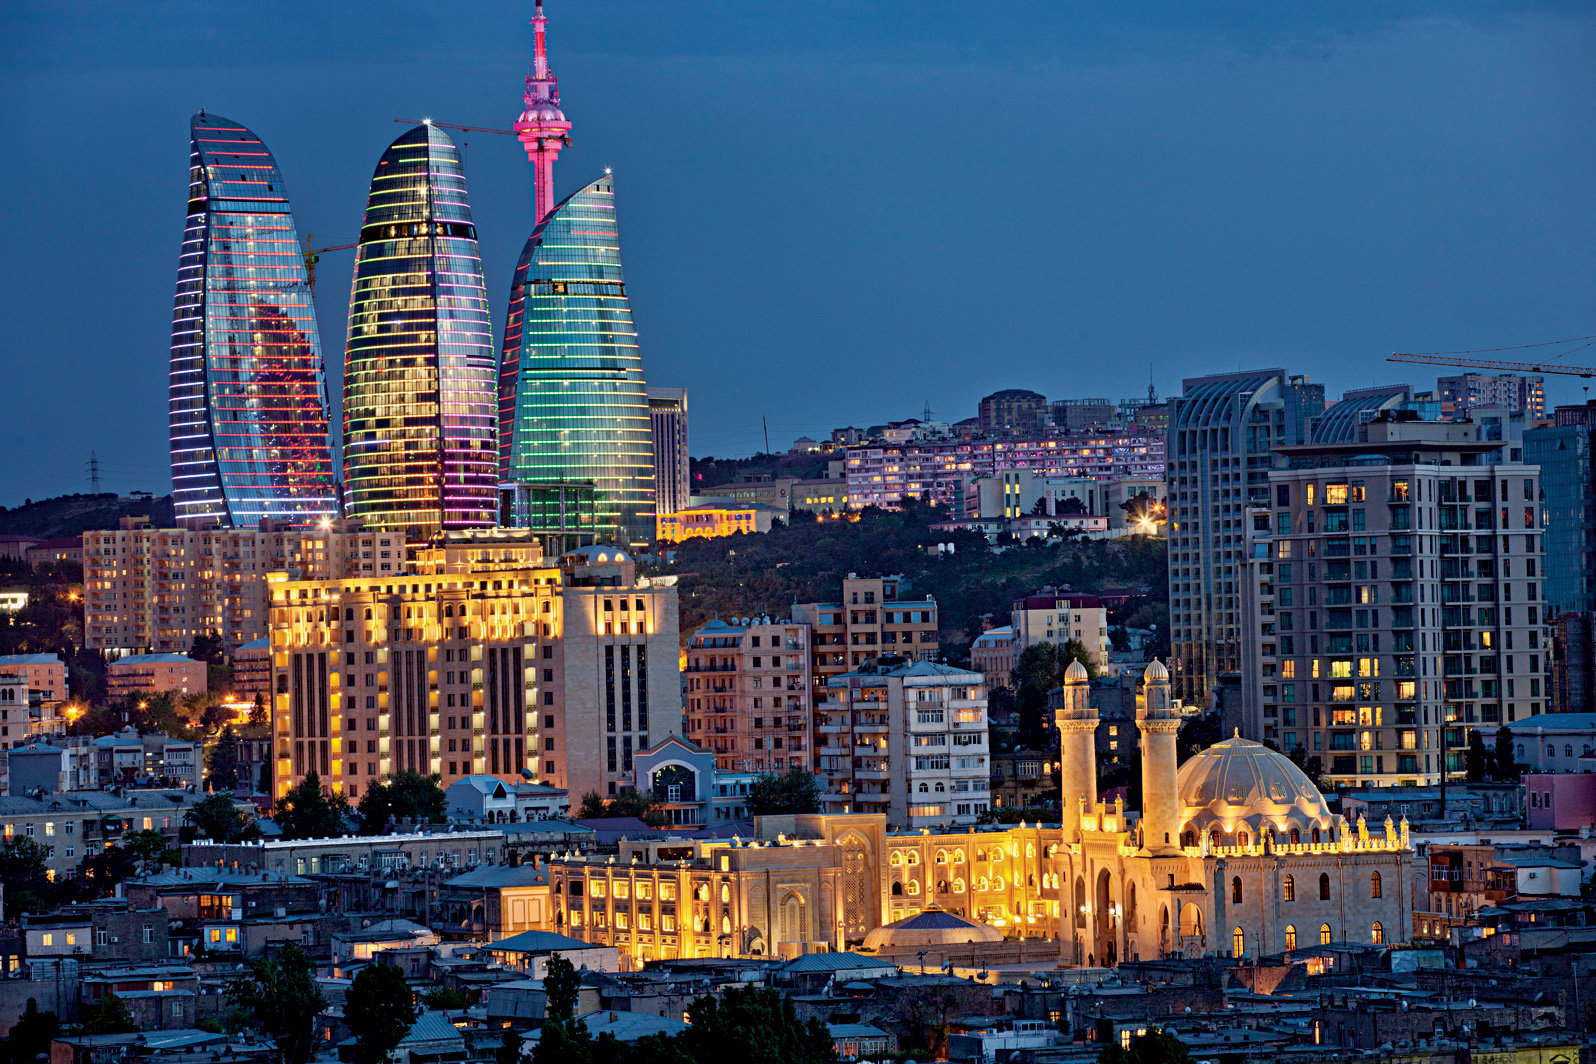 AZERBAIJAN, GEORGIA & ARMENIA - 10 May - 01 June 2021 Escorted by Mike Wood AUD$6,995 3